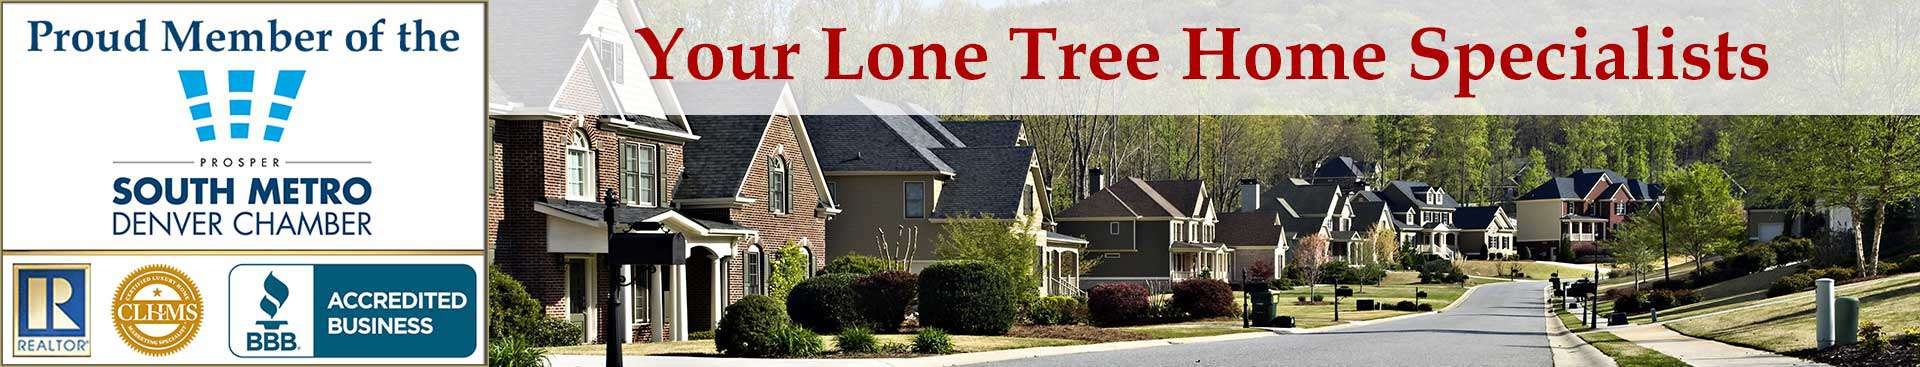 Lone Tree CO Organizational Banner